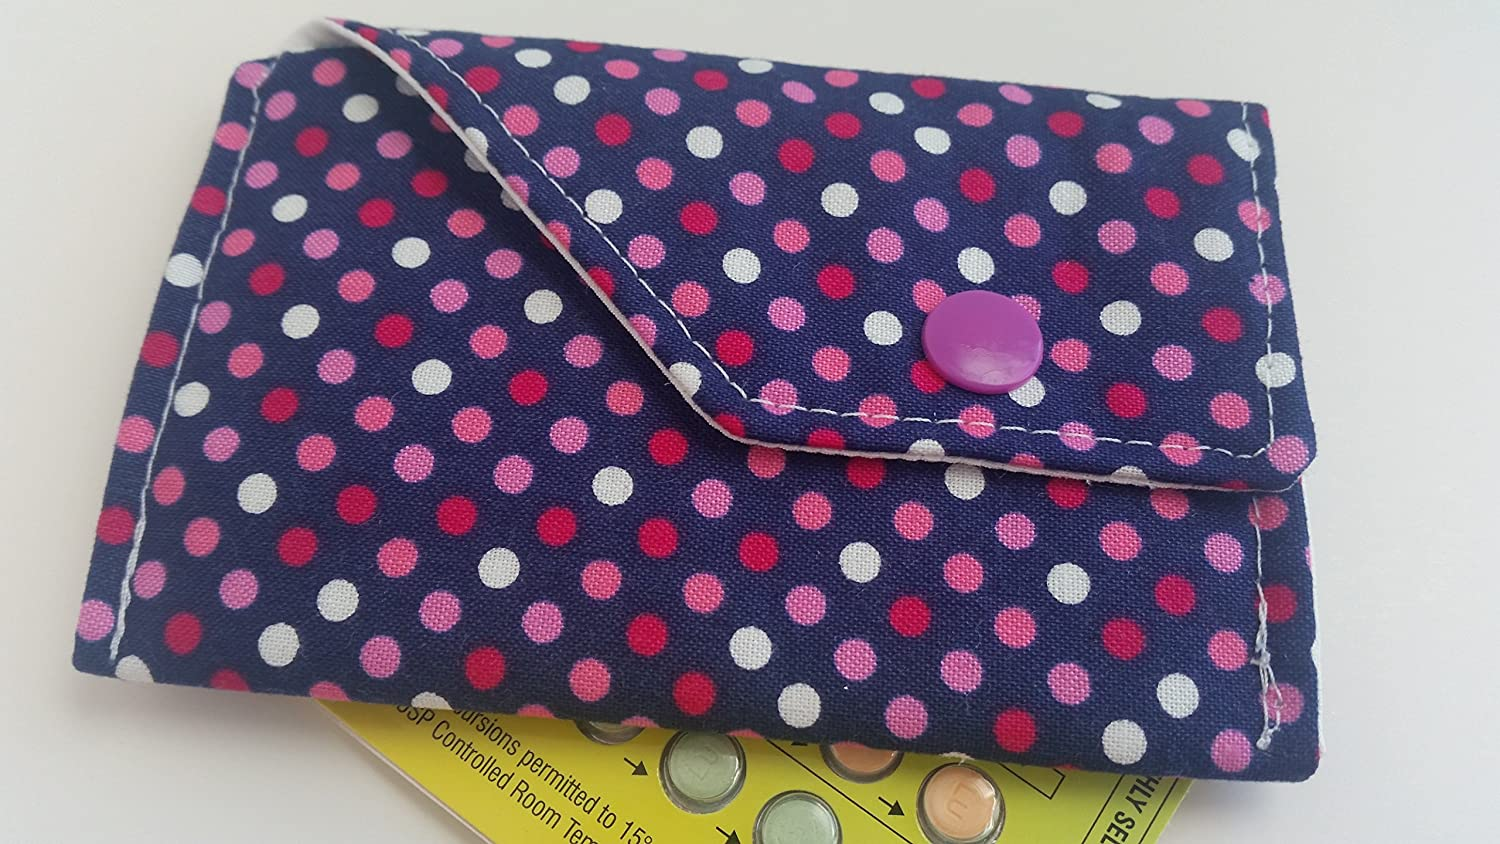 Birth Control Case Sleeve with Snap Closure -Pink dots on navy